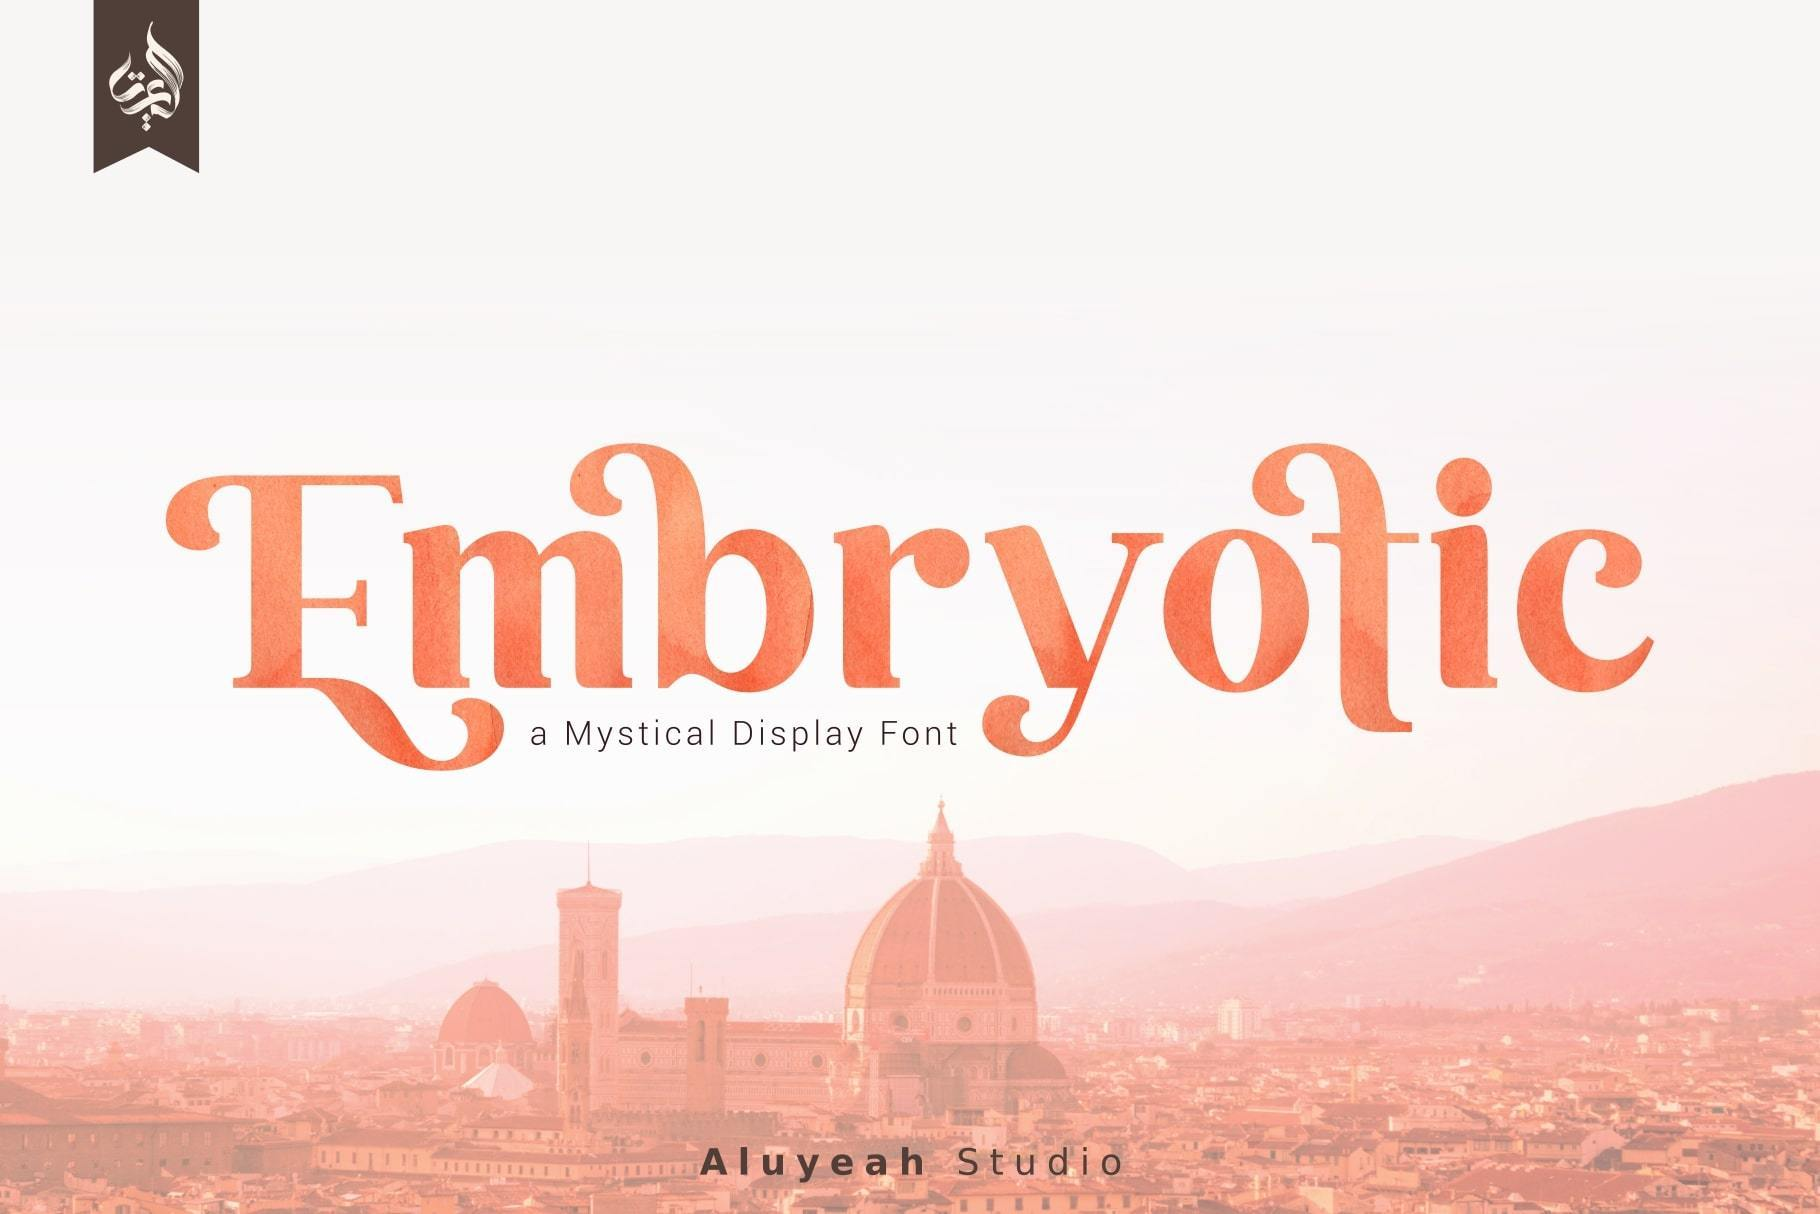 Embryotic-Serif-Display-Font